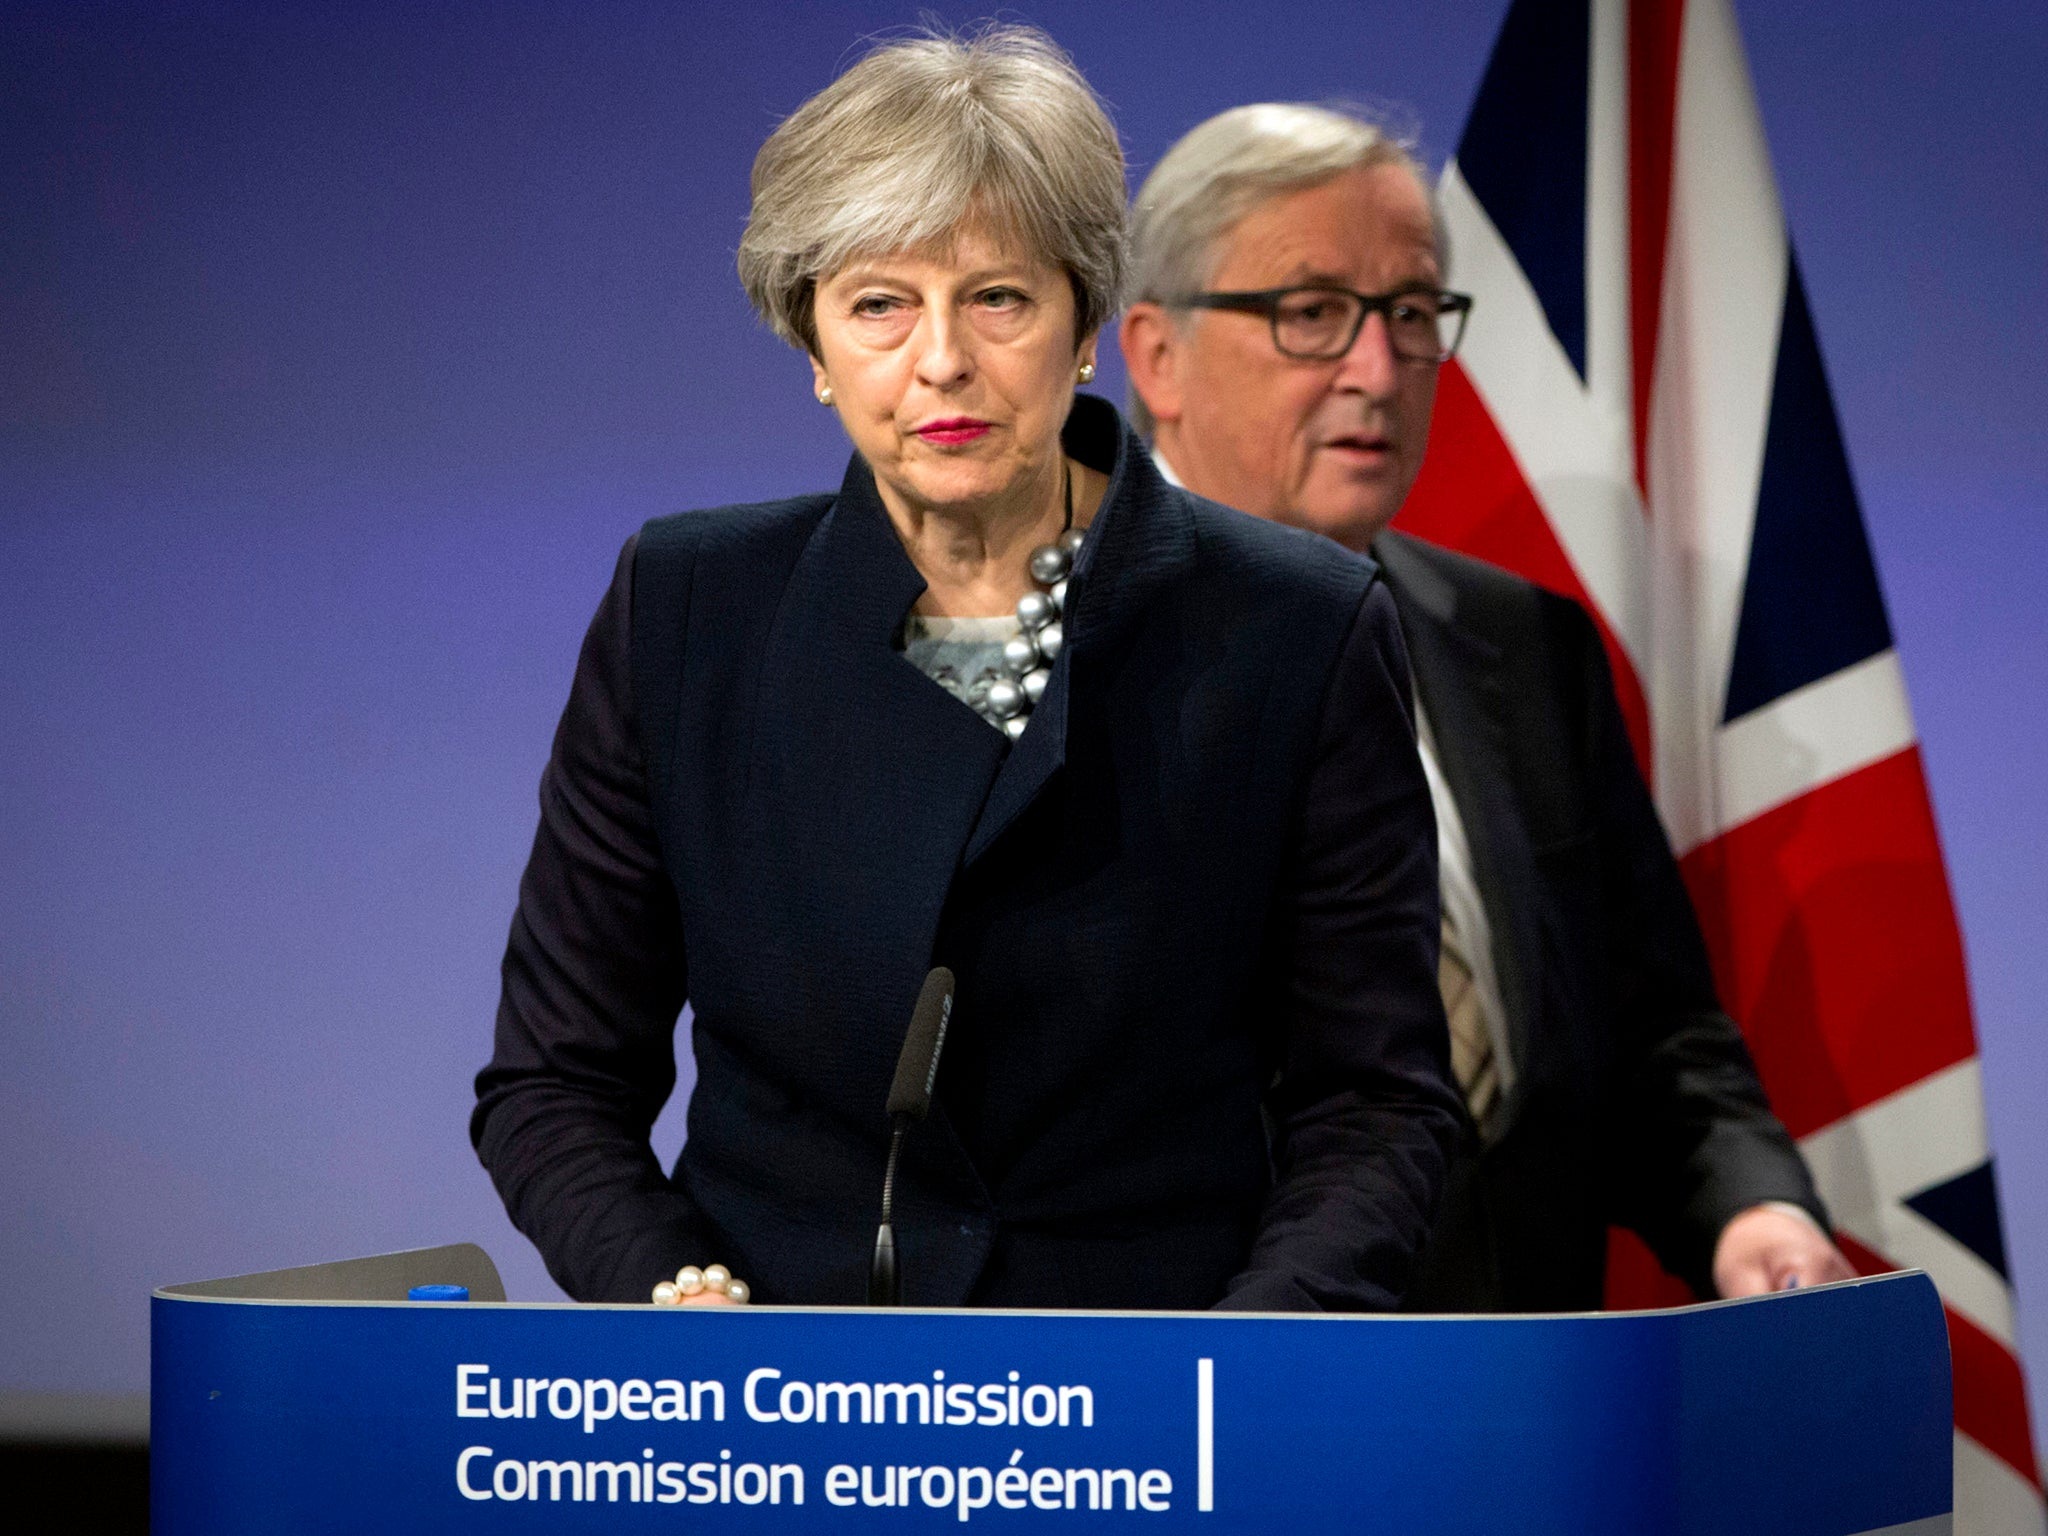 No Brexit deal reached today after major DUP intervention